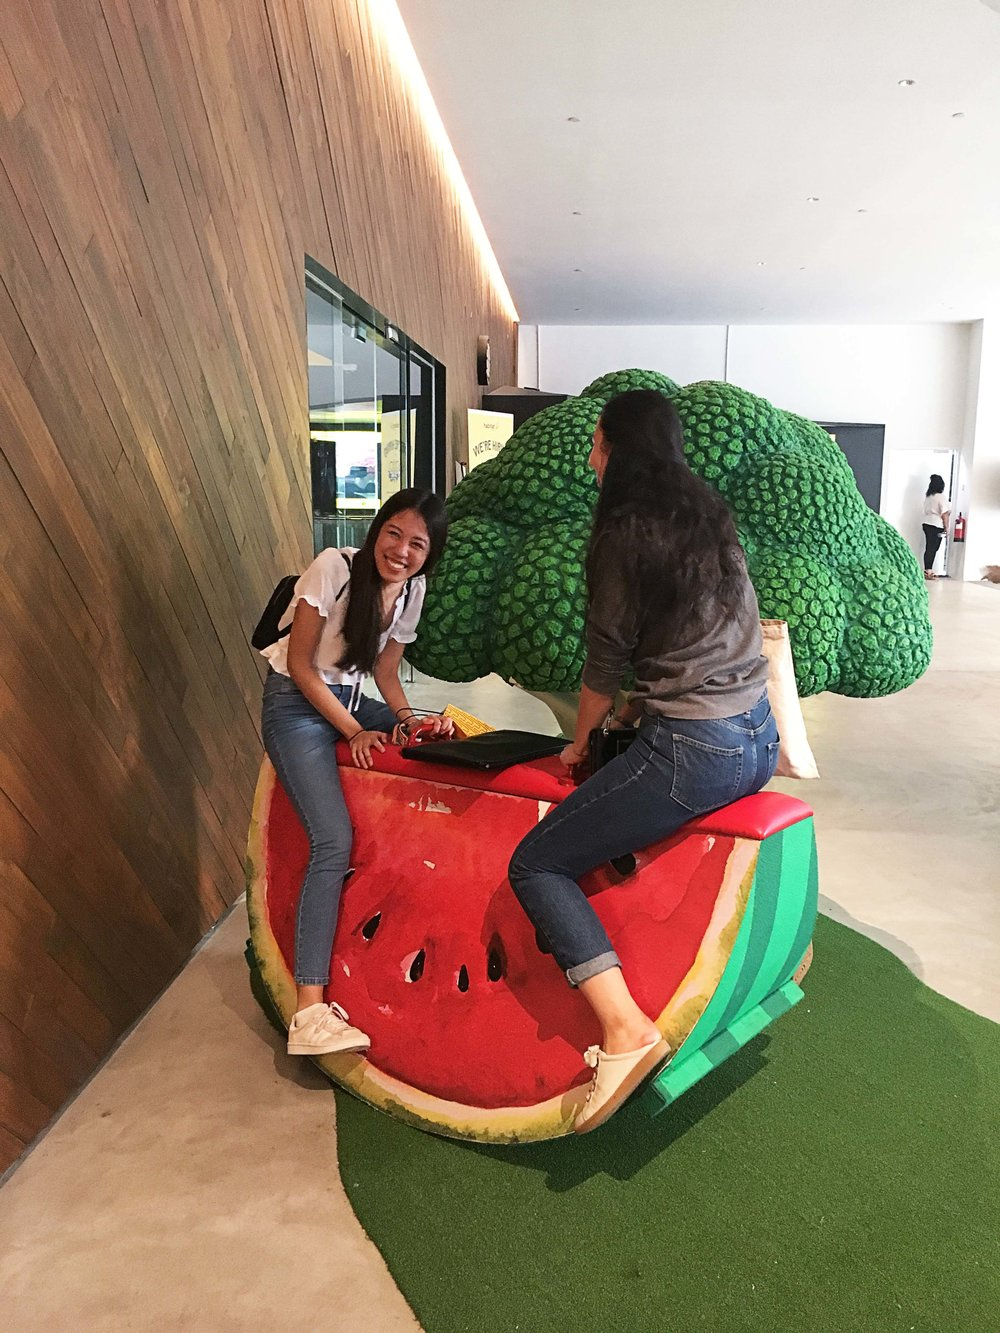 Right outside the exit, this watermelon see saw had our team jump on to give it a try. Brings back memories of picnics and lawns, carefree summers spent playing as kids which is a nice anomaly in the urban jungle we were in.